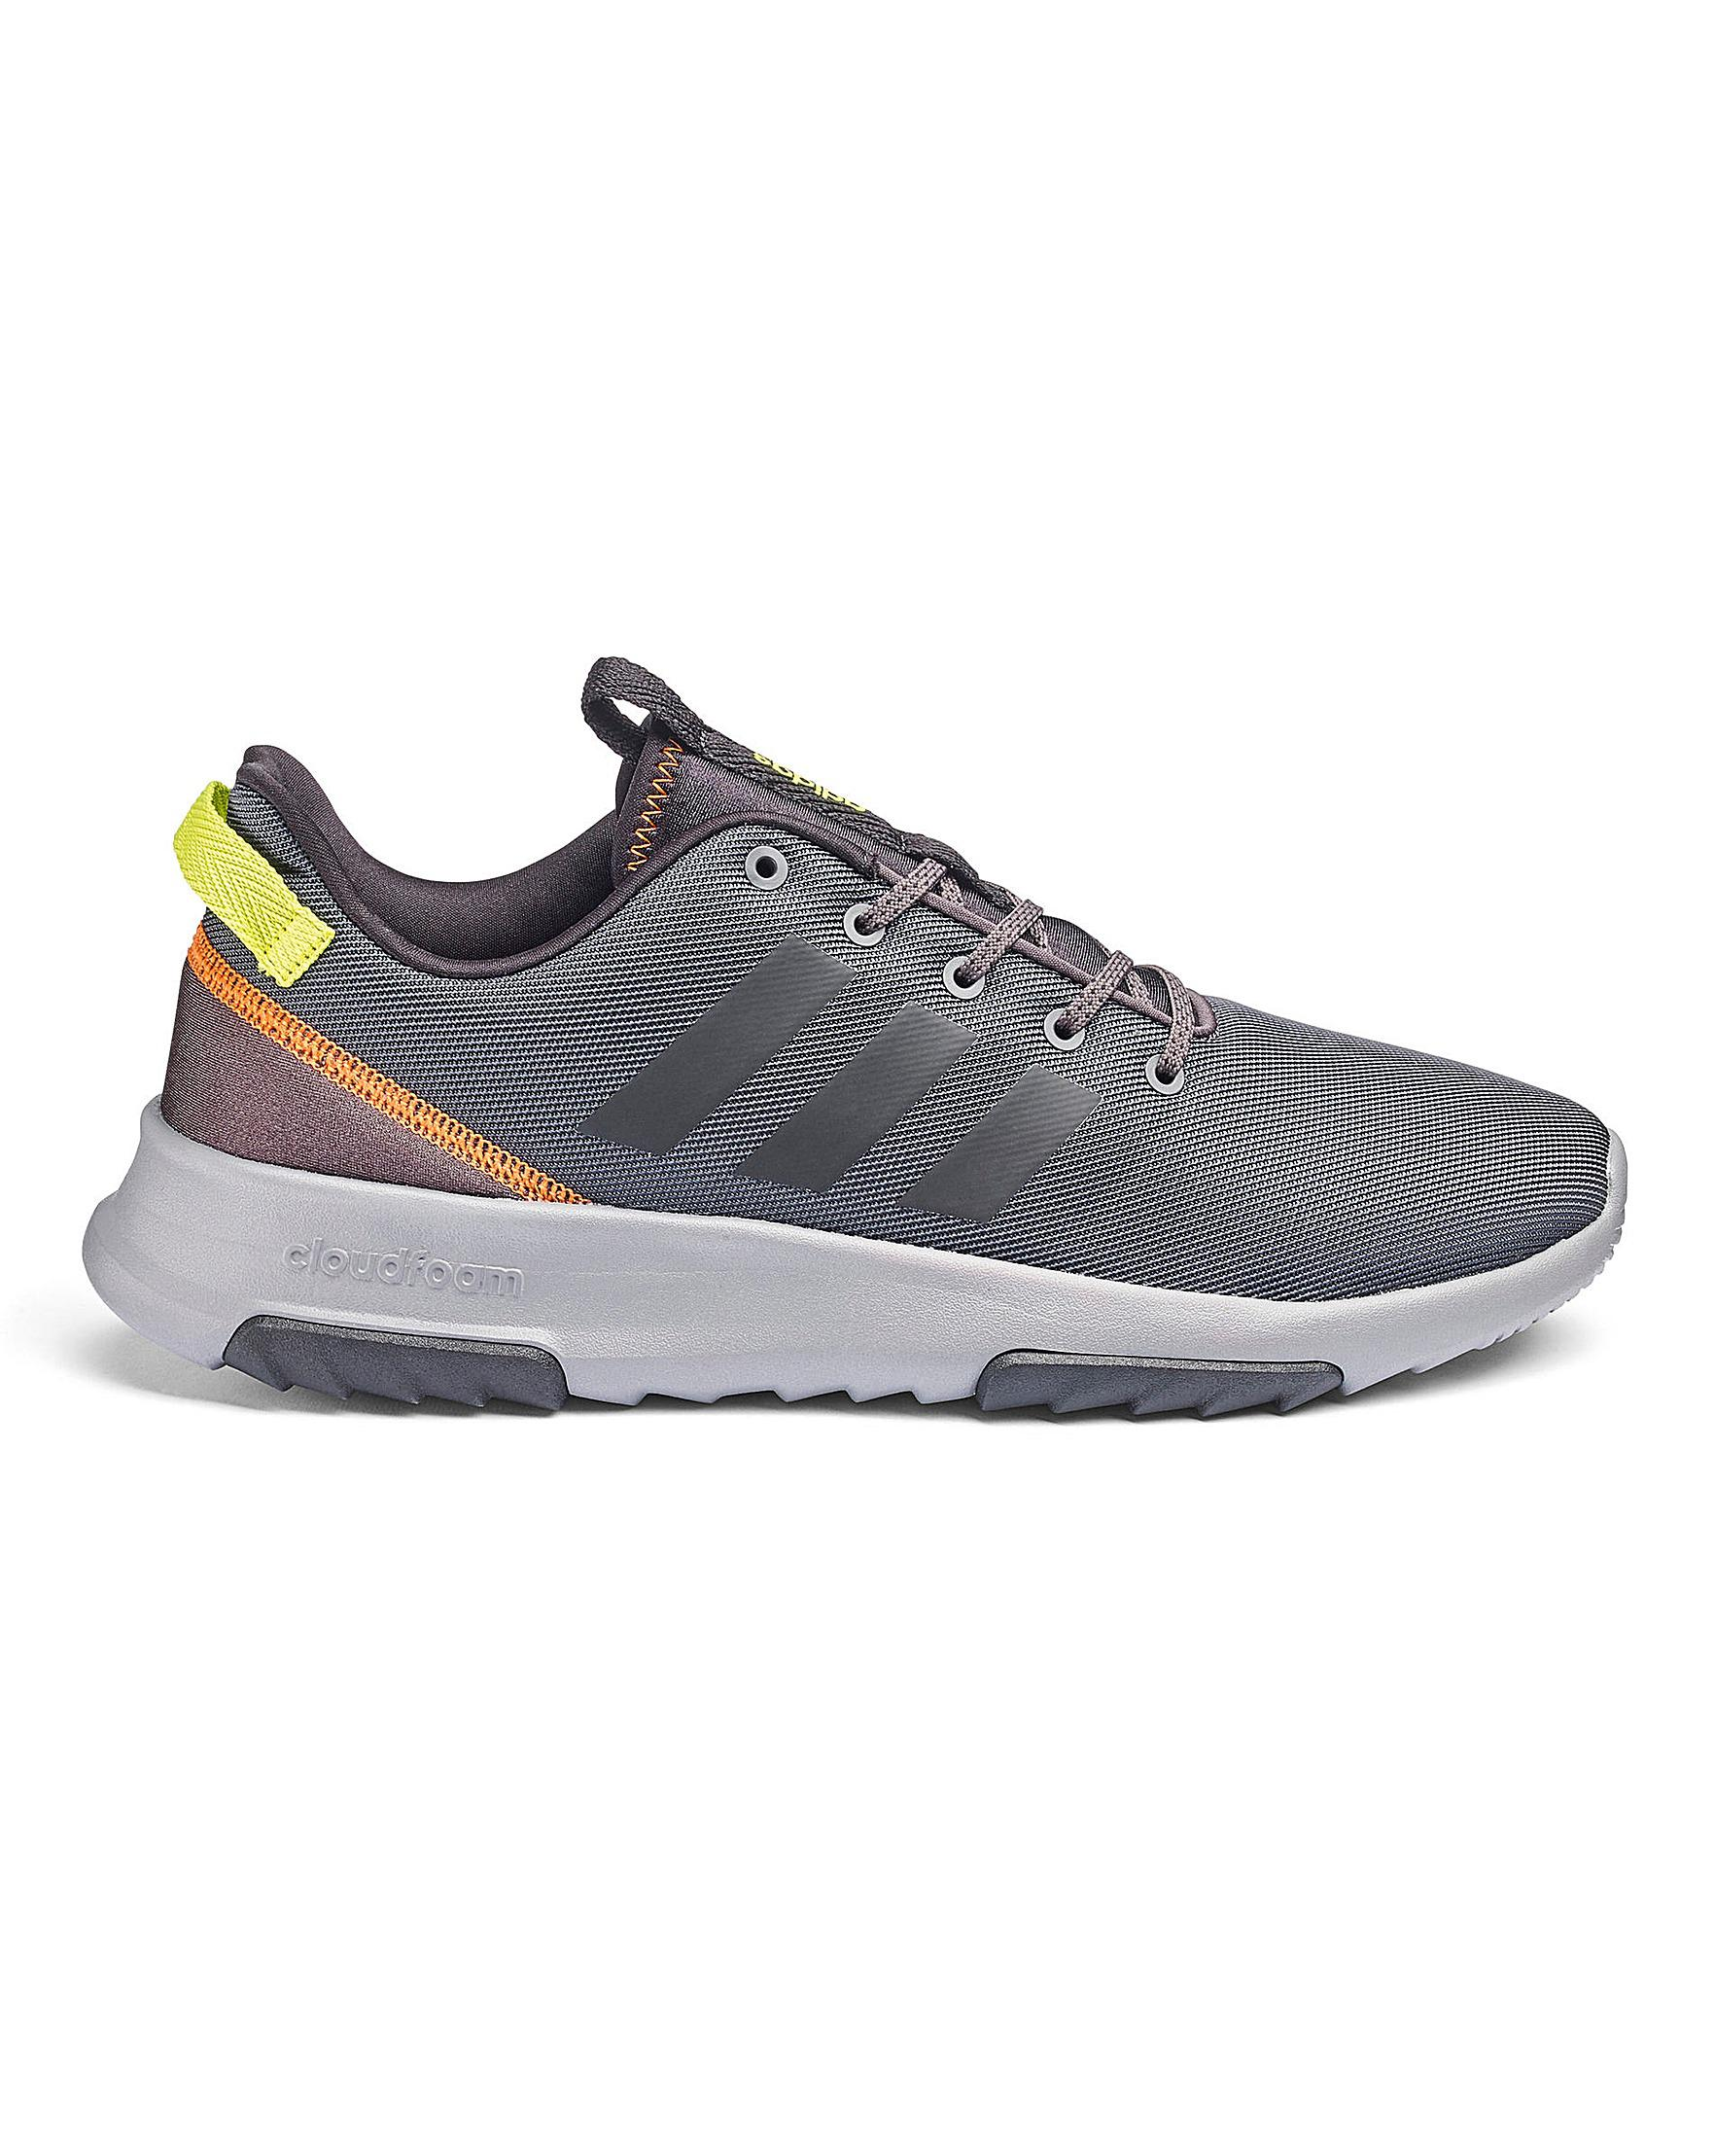 adidas cf racer trainers